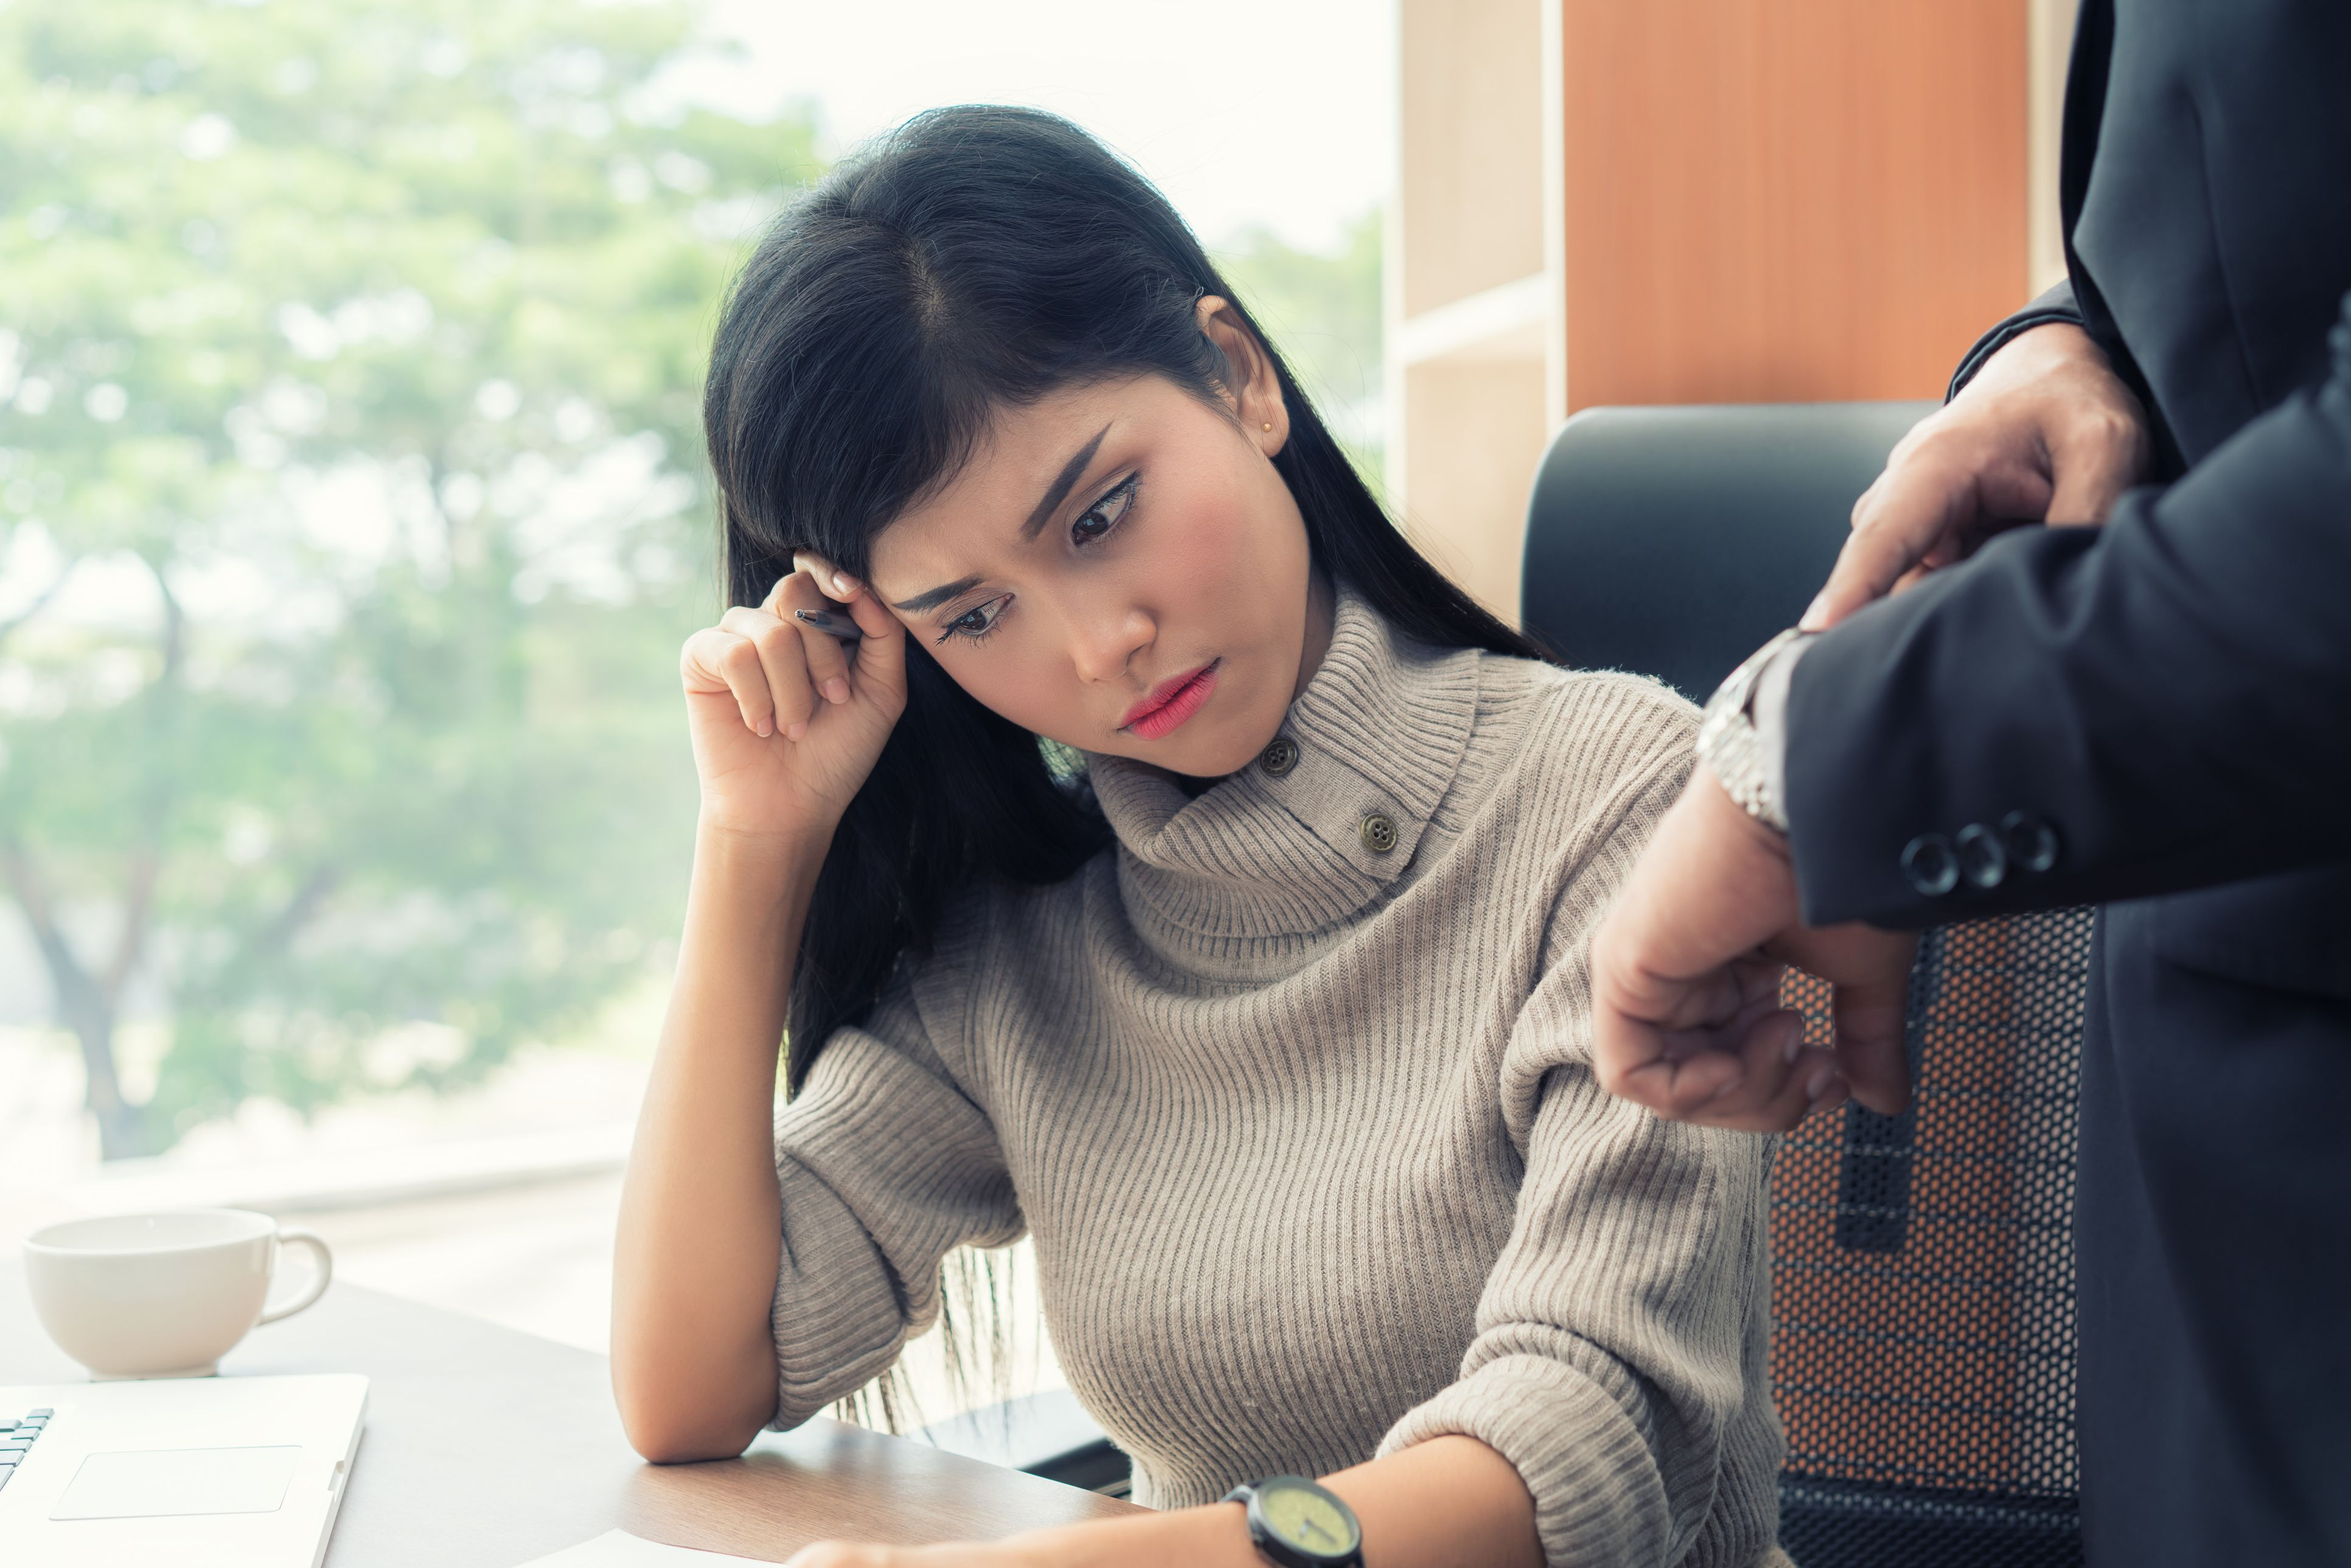 How Can You Disagree With Your Boss Without Getting Fired?